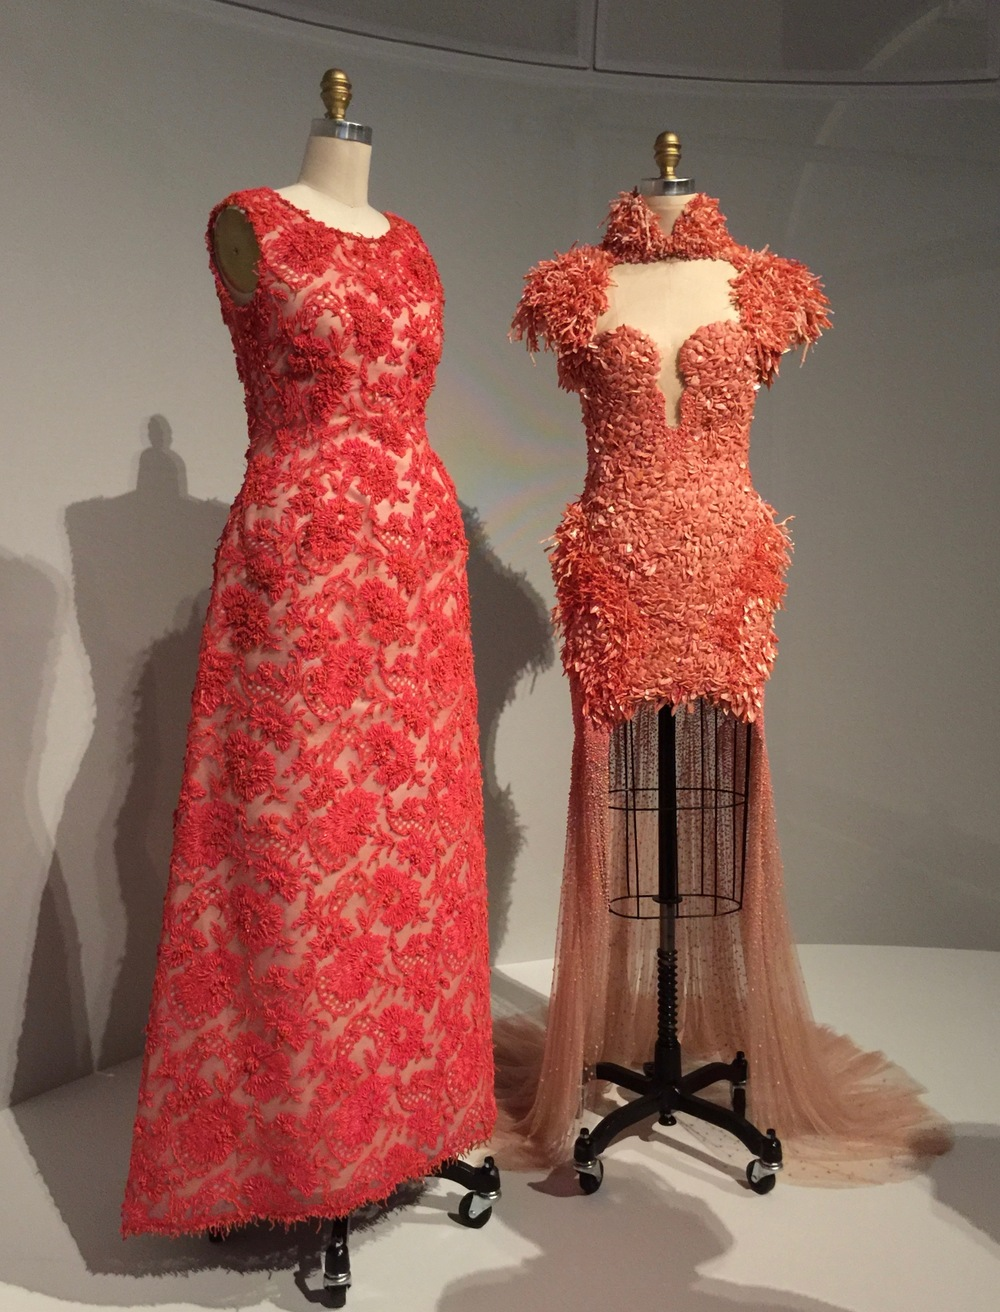 (l) HOUSE OF GIVENCHY, Hubert de Givenchy DRESS, 1963, haute couture Hand-sewn red-orange cotton Mechlin-type lace hand-embroidered with red-orange glass beads, tinsel, and pieces of coral (r) ALEXANDER MCQUEEN, Sarah Burton DRESS, Spring/Summer 2012, pret-a-porter